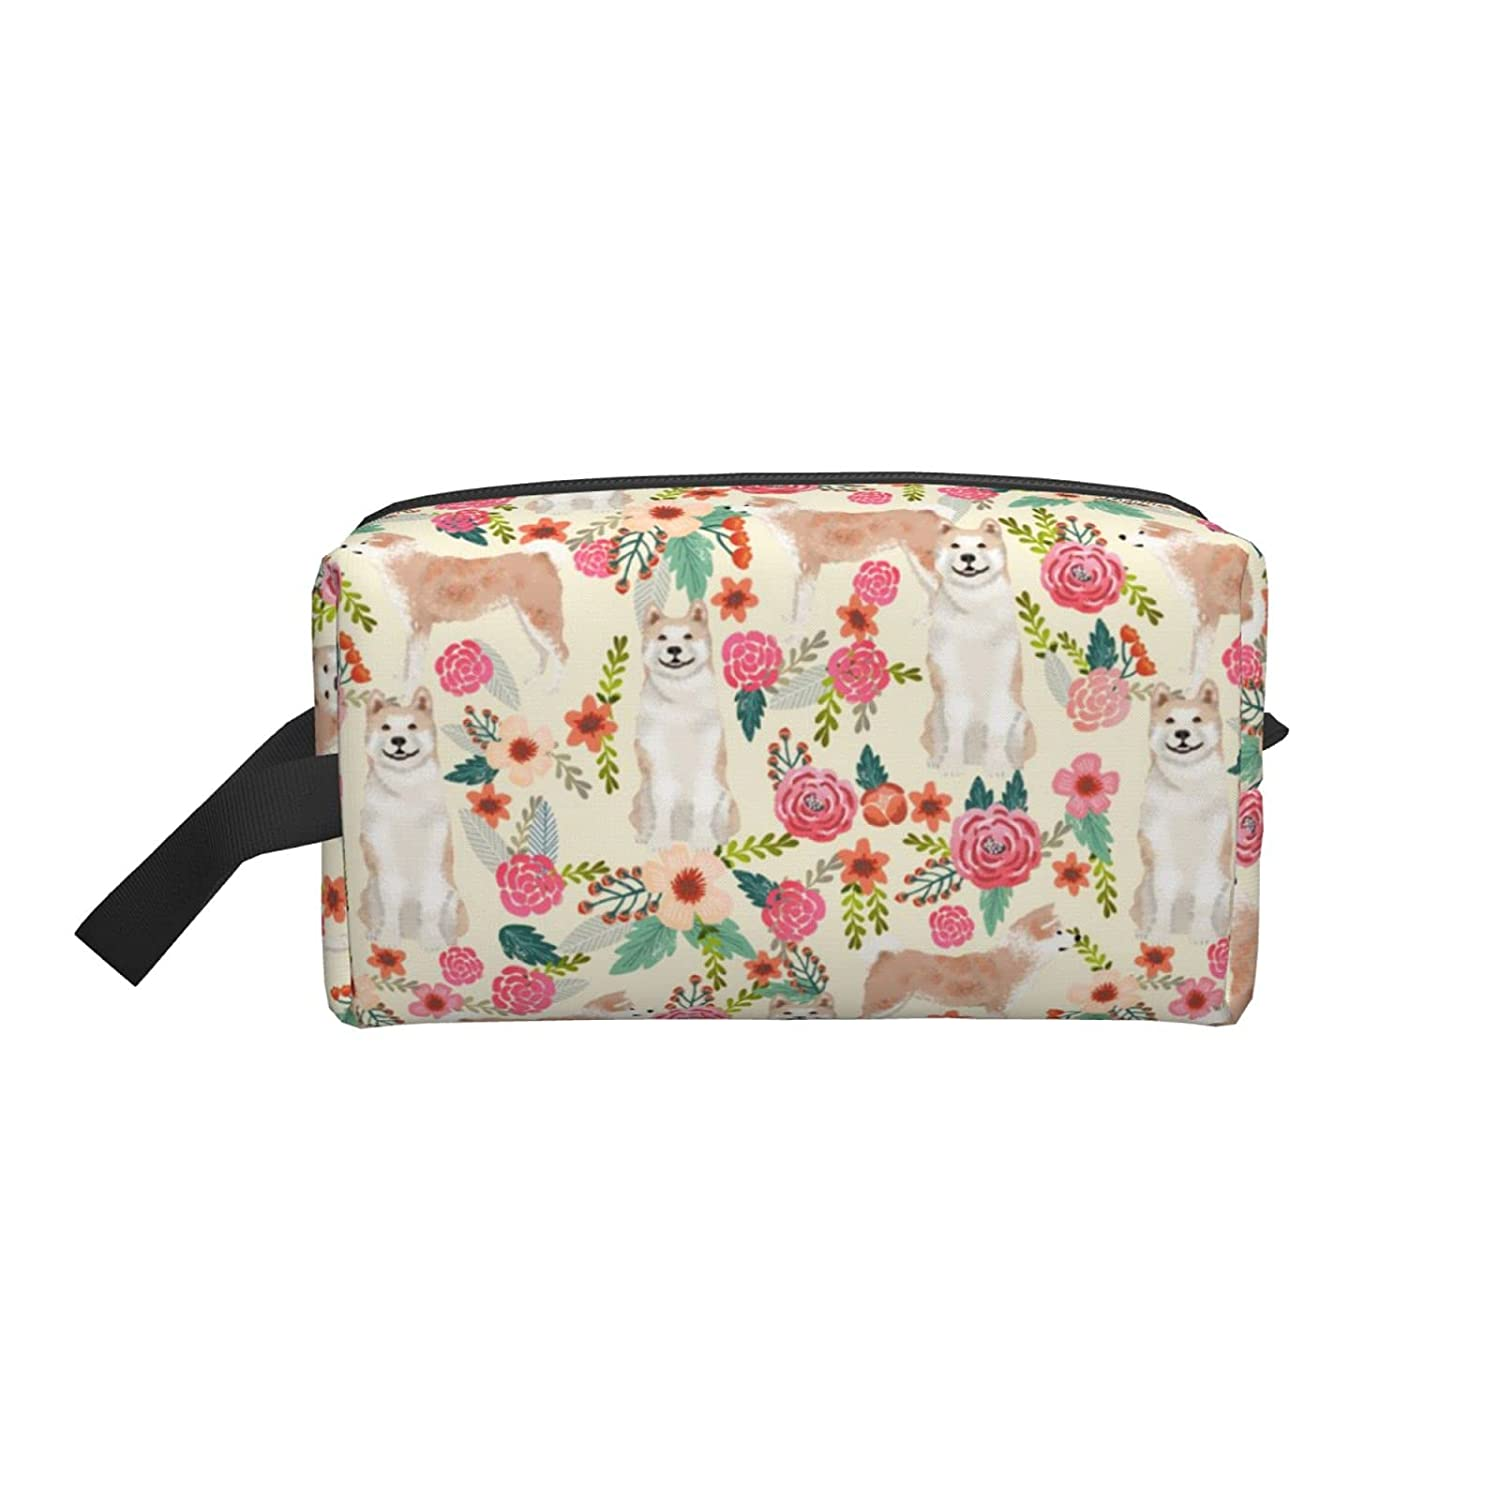 Akita Dogs And Florals Ranking TOP10 Brand new Travel C Portable Makeup Train Bag